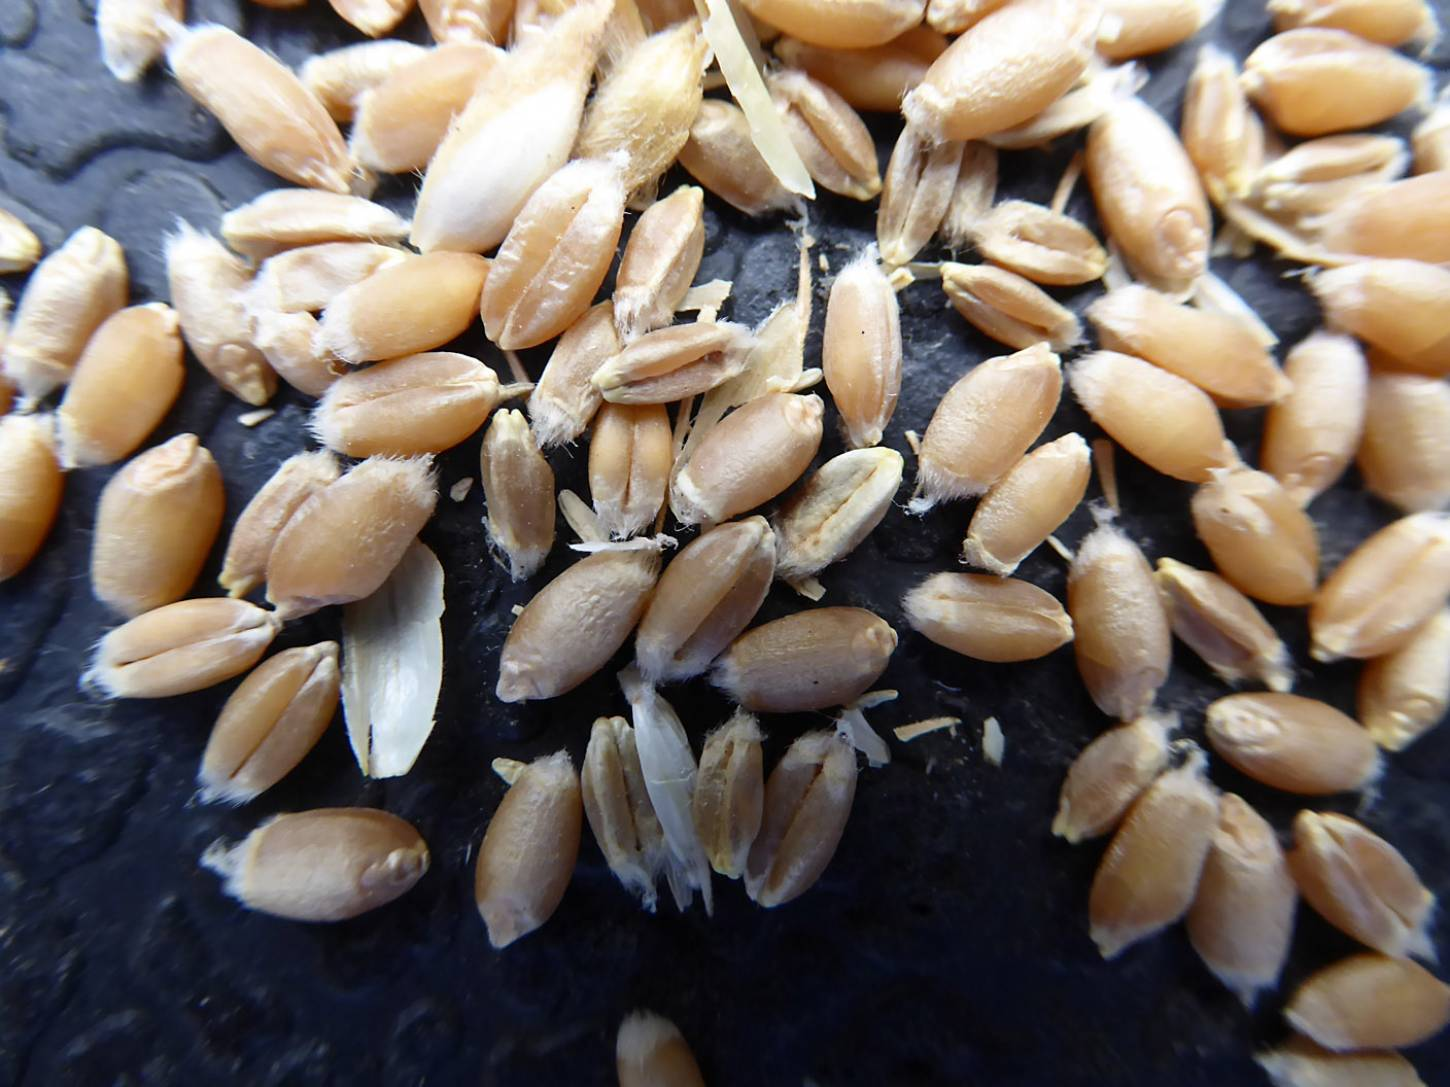 wheat identification images for <a href='http://brockwell-bake.org.uk/wheat/search.php?send=1&ID=109386&genes=1&bunt_a=1' target='_blank'>Red Stettin 13</a> and more <a href='http://www.wheat-gateway.org.uk/hub.php?ID=57' target='_blank'>info</a> - 6:48pm&nbsp;3<sup>rd</sup>&nbsp;Aug.&nbsp;'17